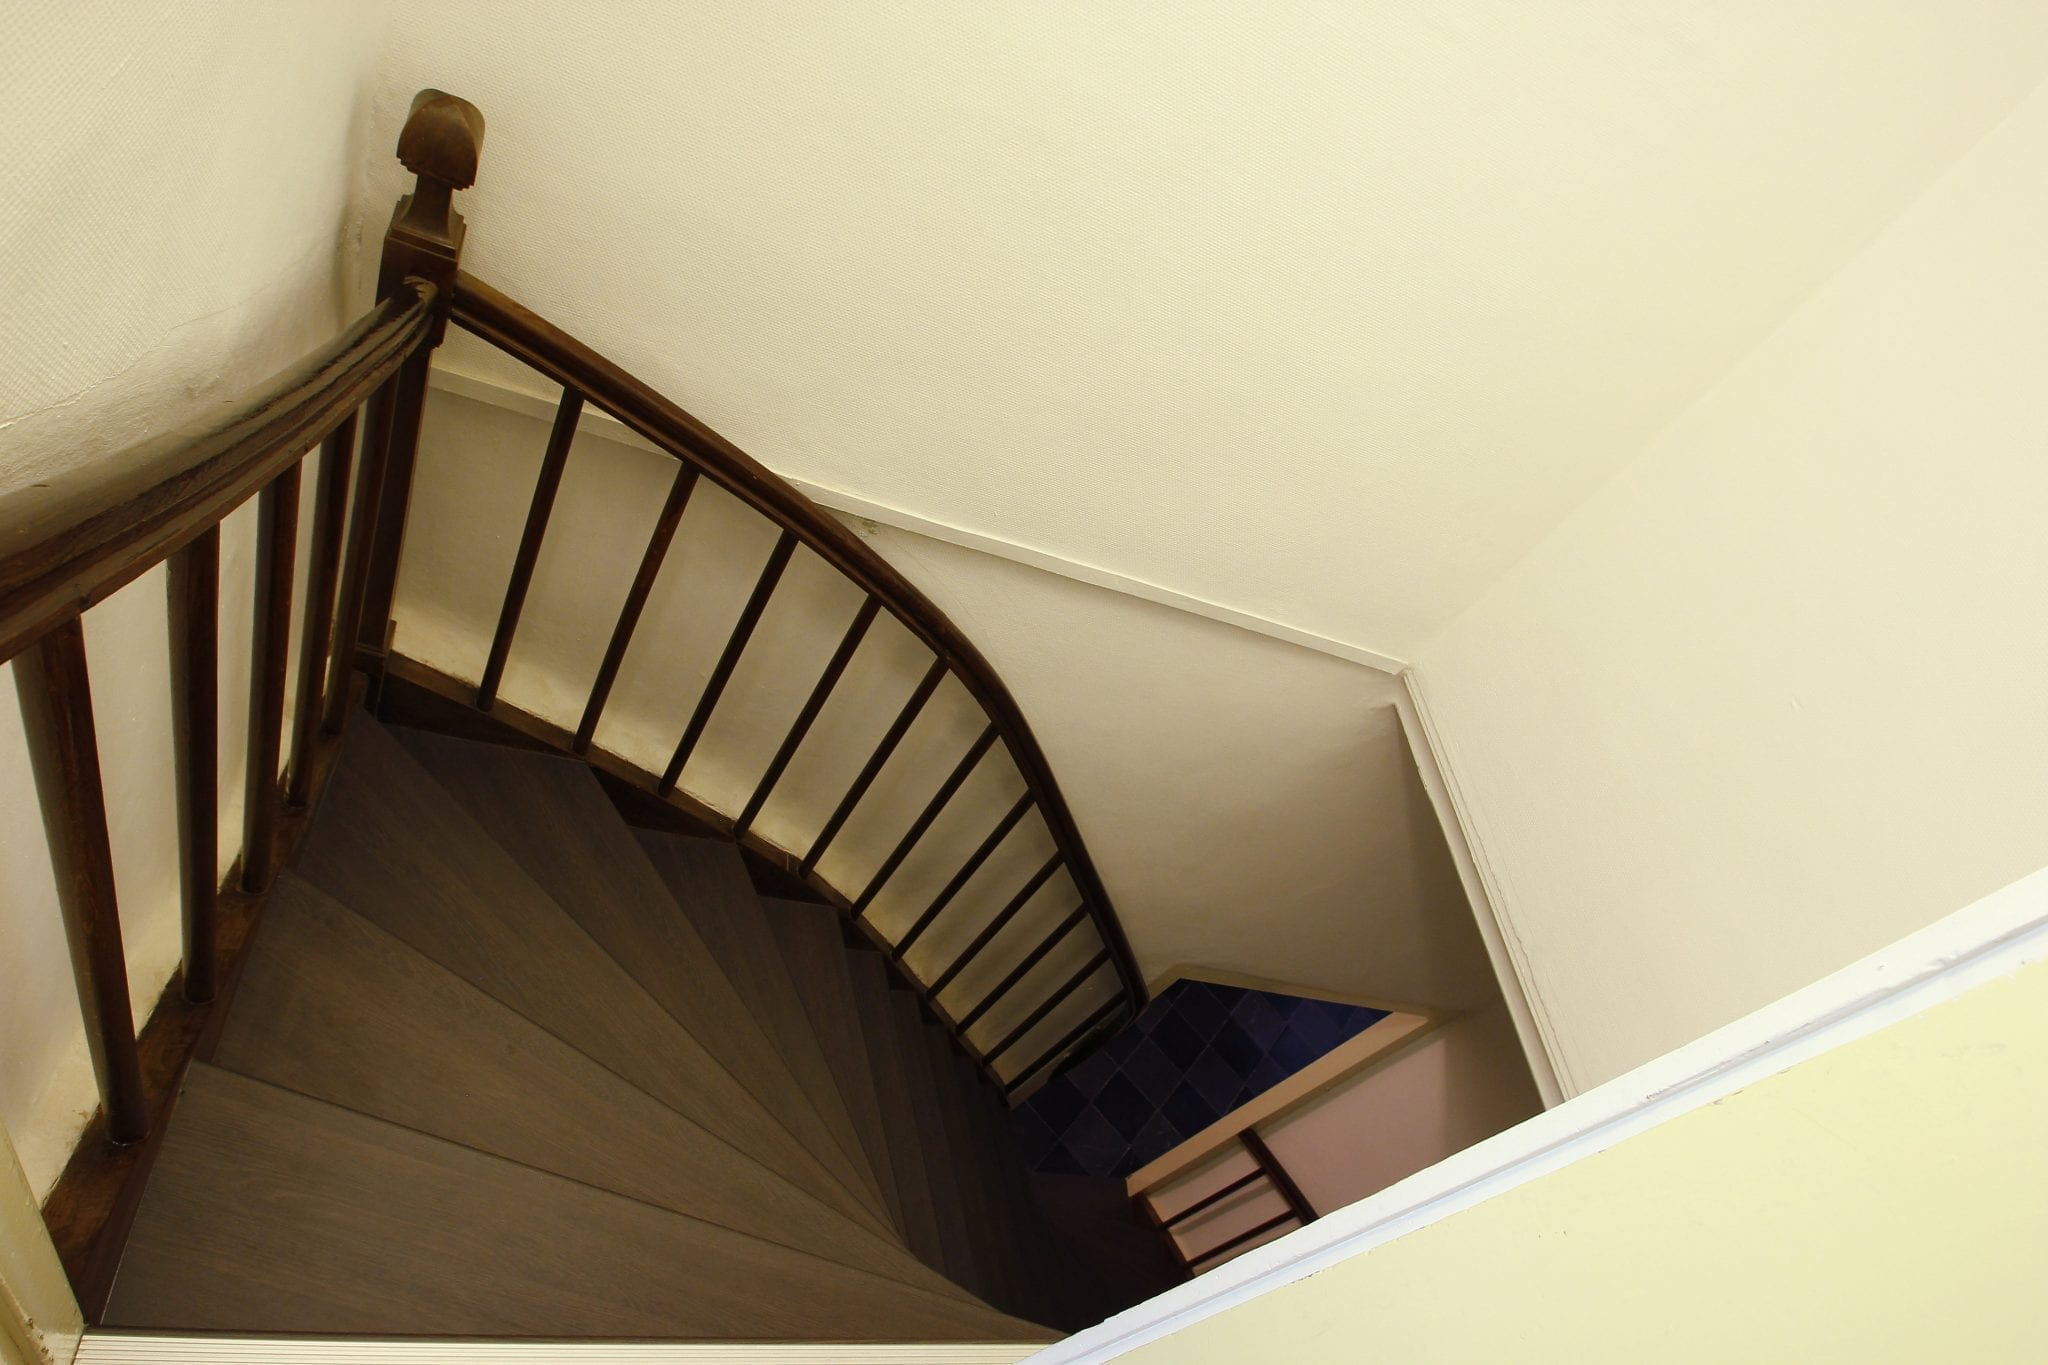 Je trap behandelen tips tricks upstairs traprenovatie - Aanpassen van een houten trap ...